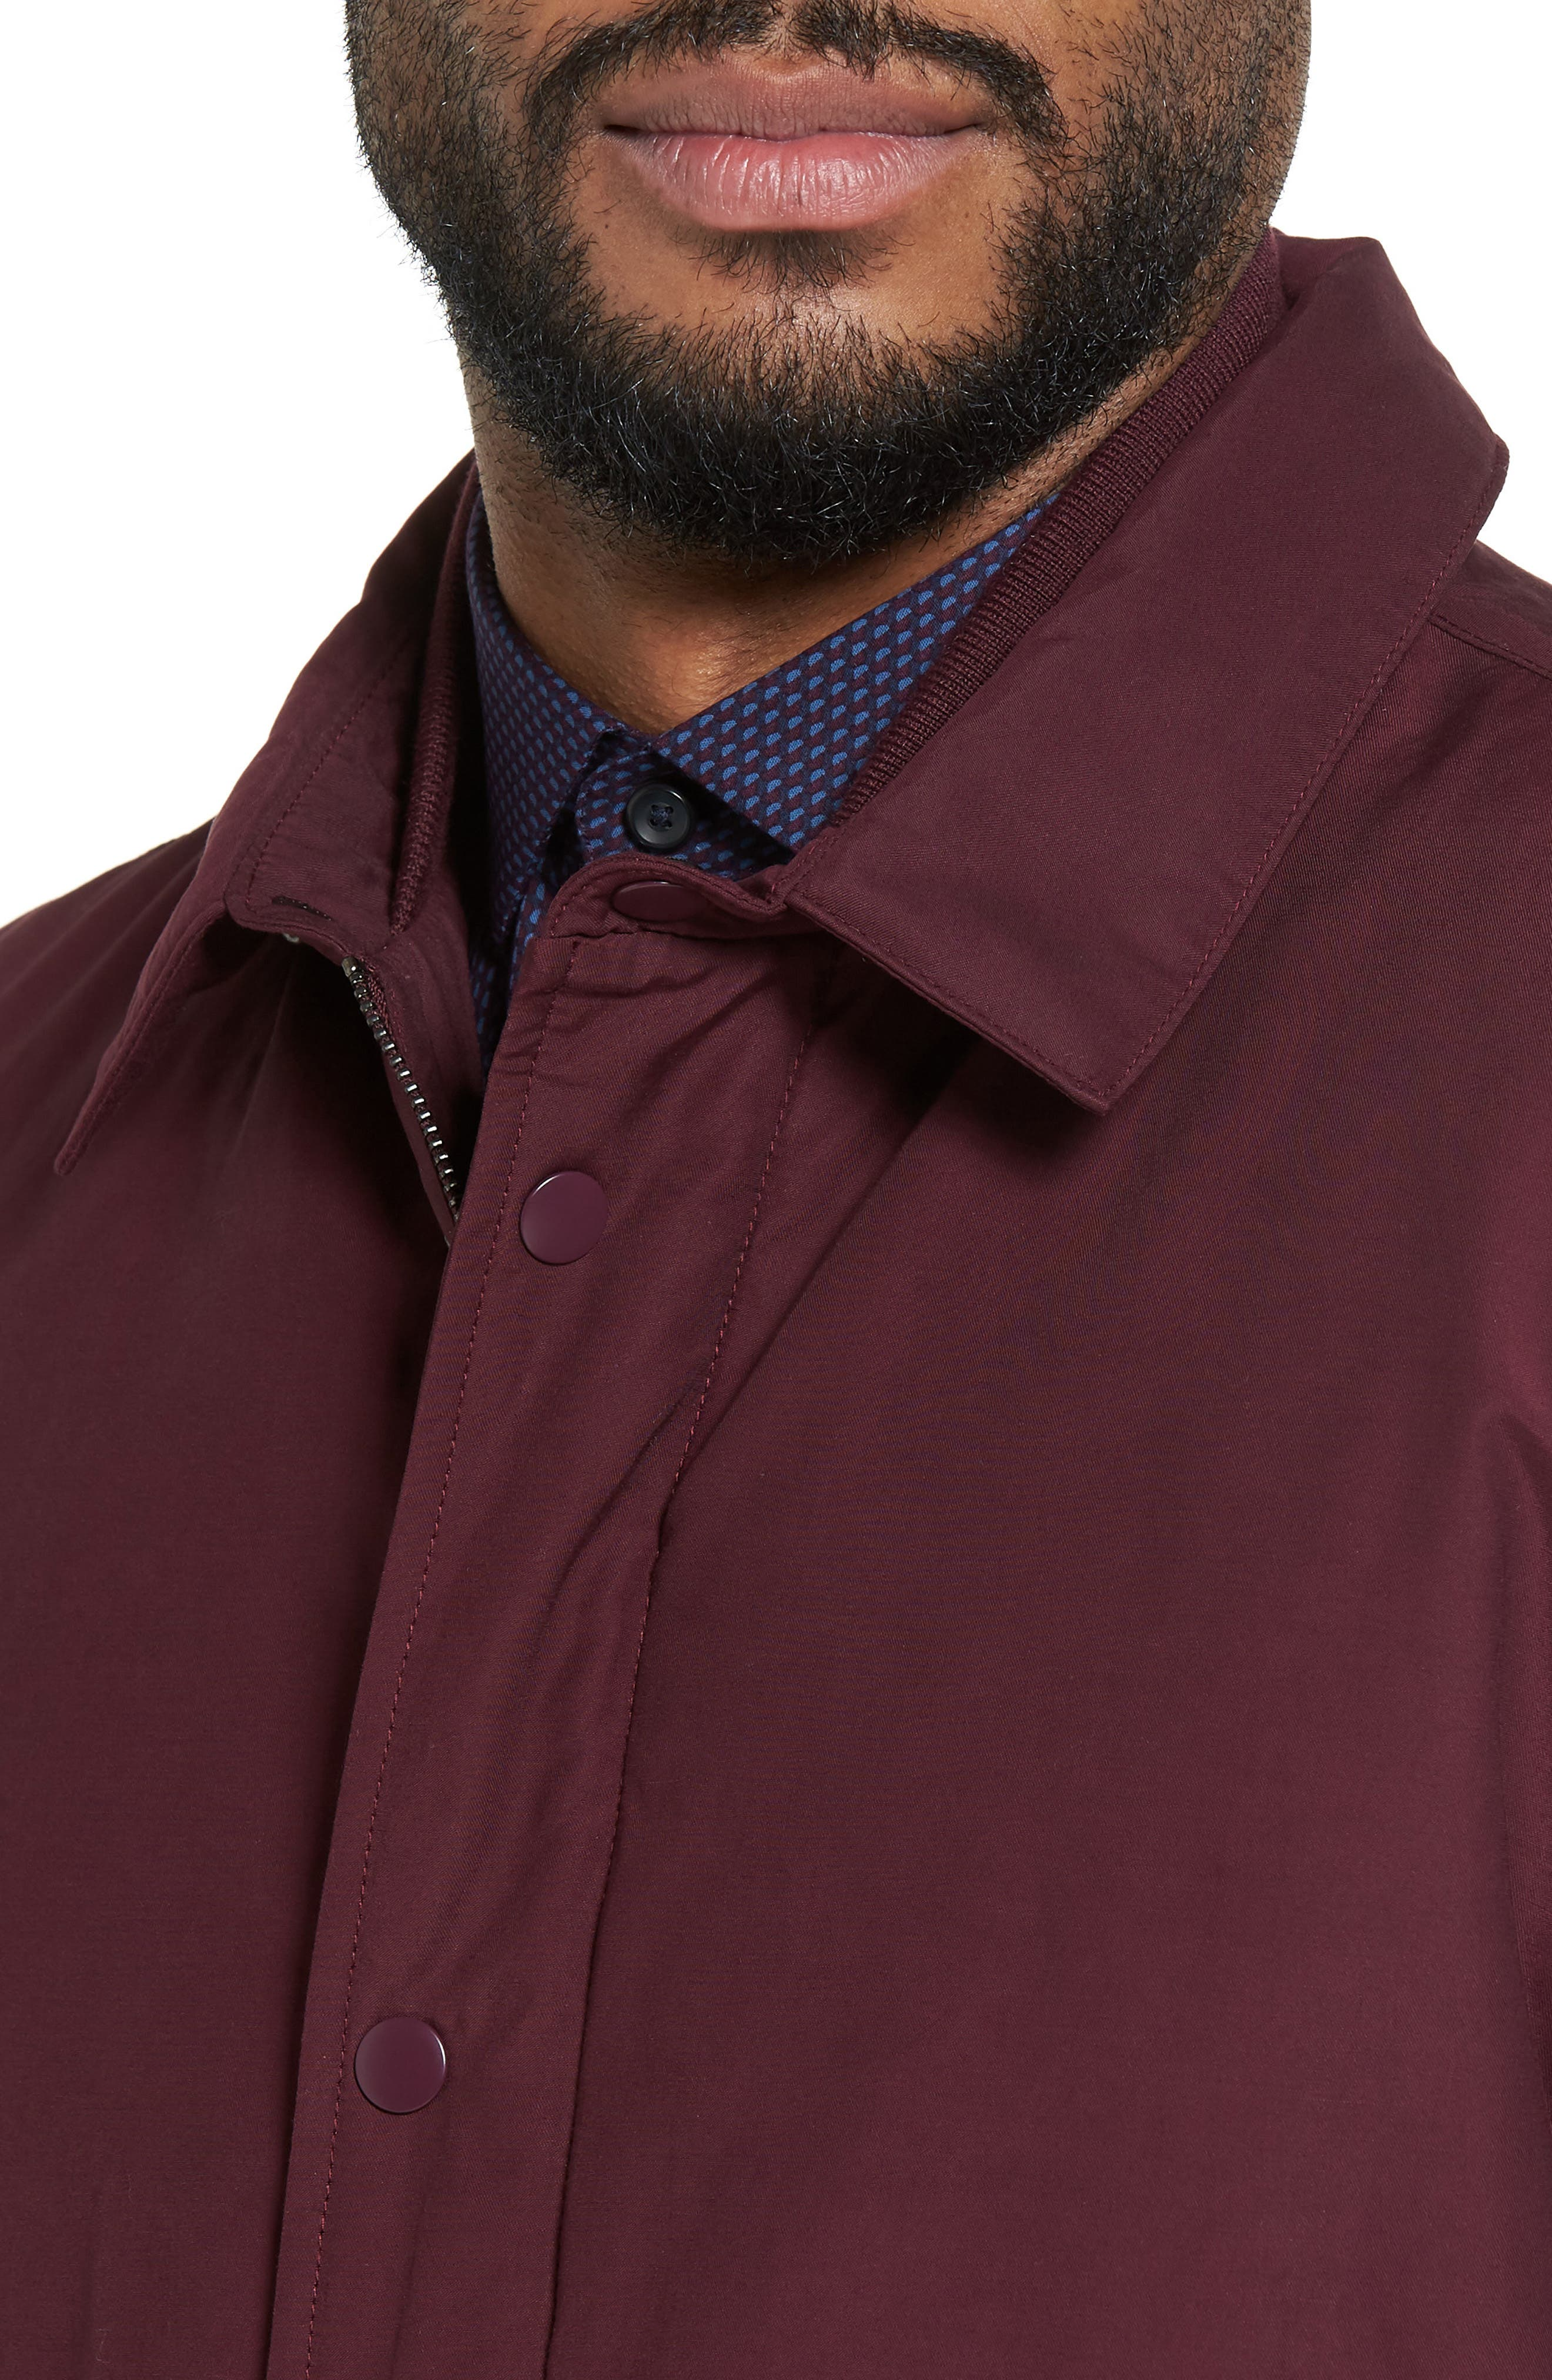 Collared Bomber Jacket,                             Alternate thumbnail 8, color,